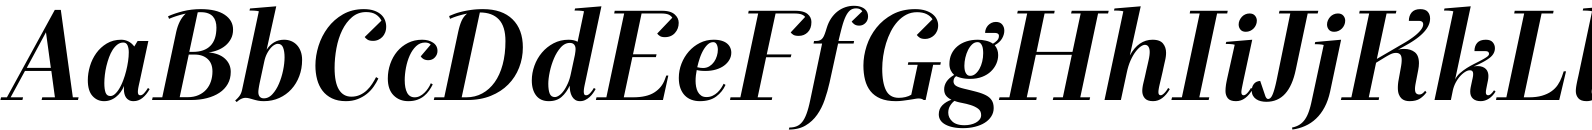 Exquise FY Bold Italic Font